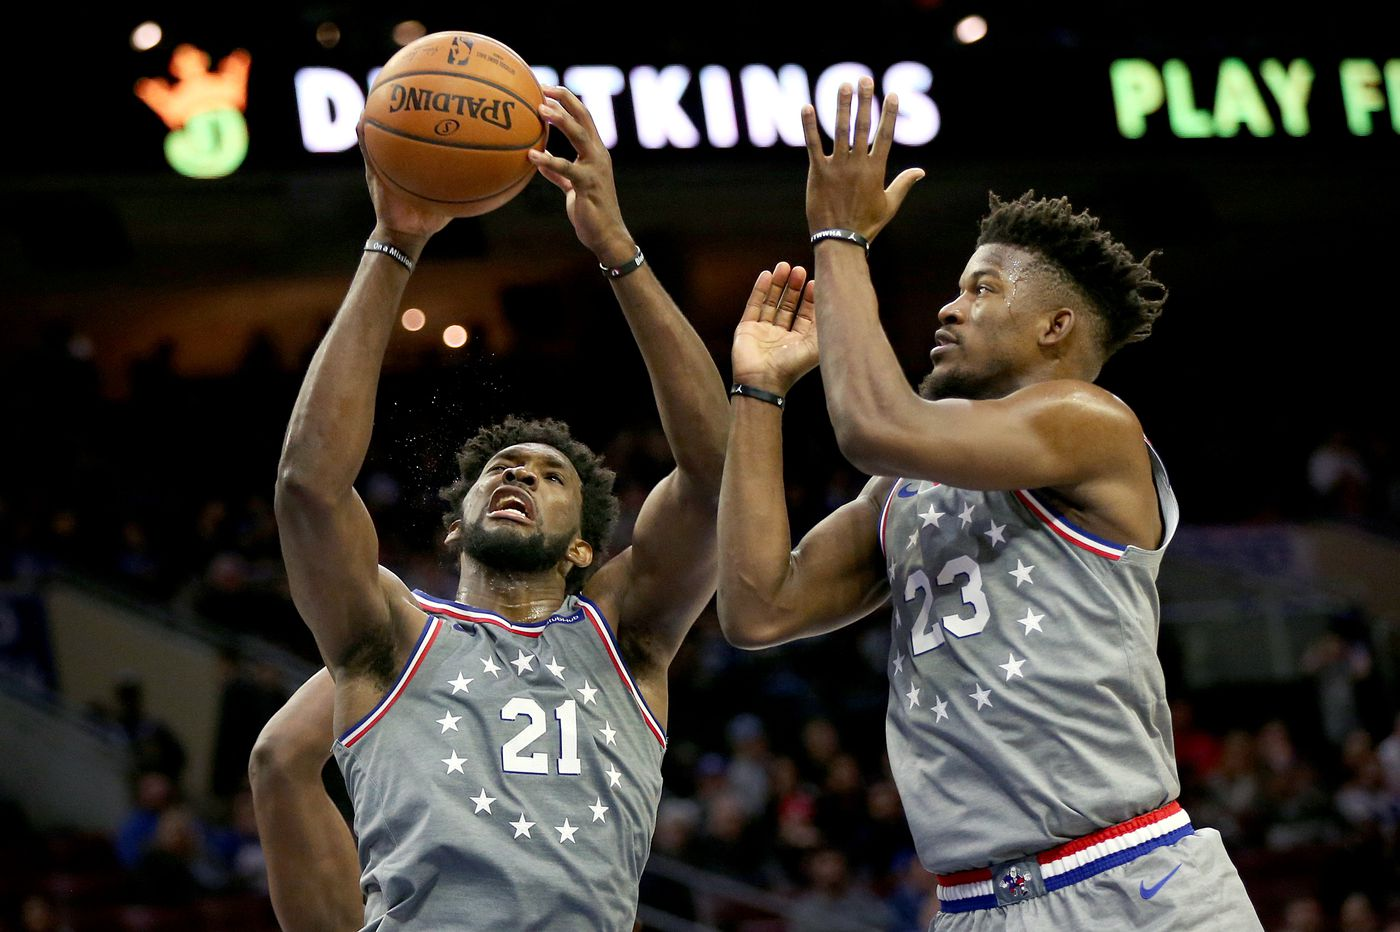 Sixers' Joel Embiid and Jimmy Butler have no issues, but Brett Brown must keep them both engaged